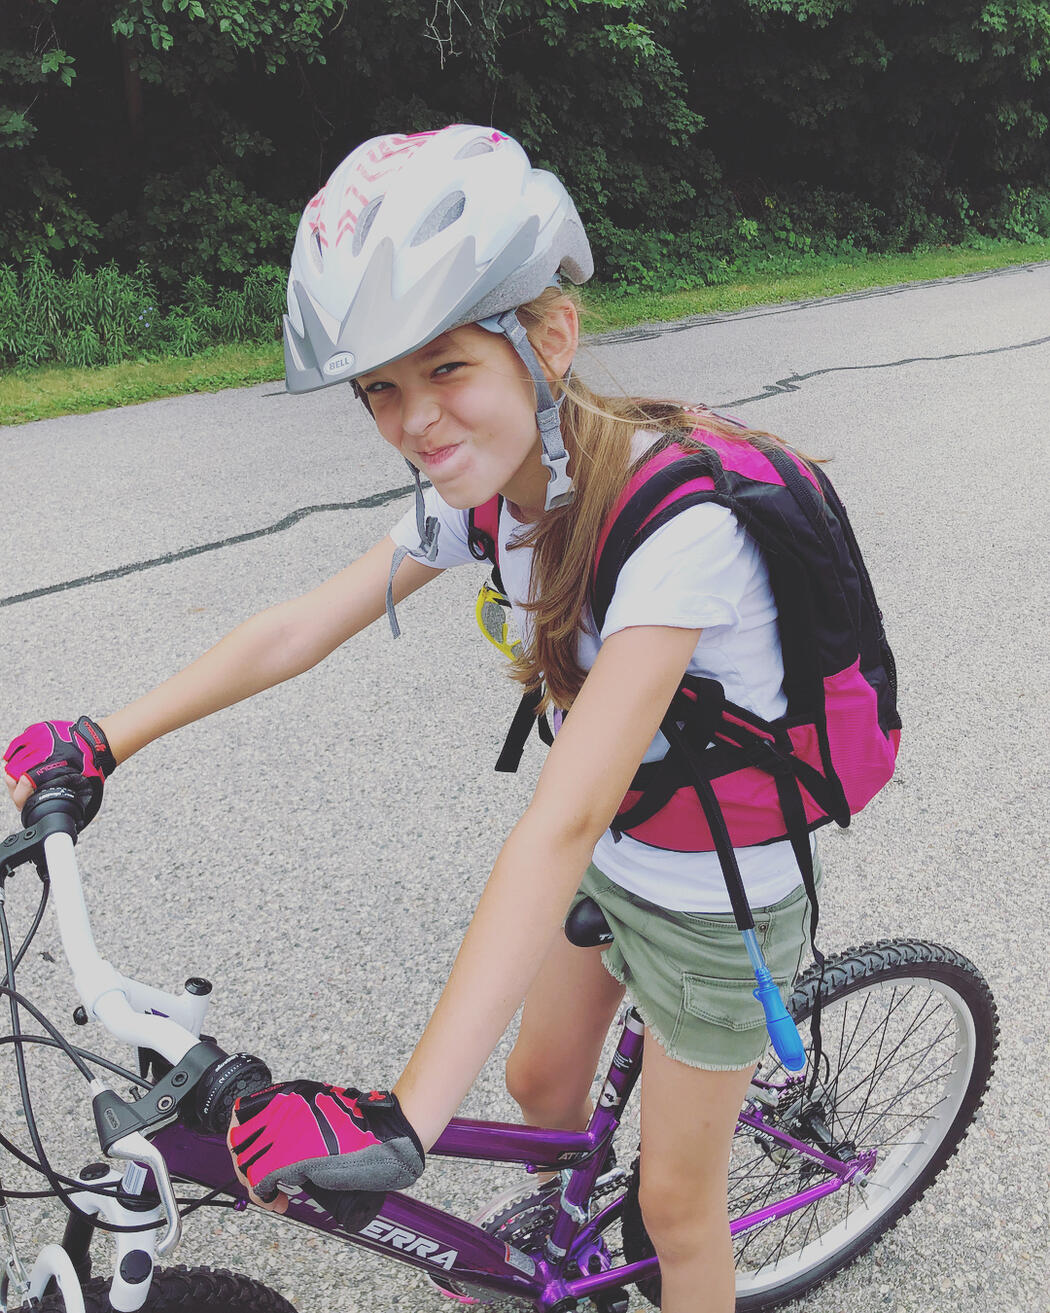 A girl, smiling, wearing a bicycle helmet and sitting on a bike.